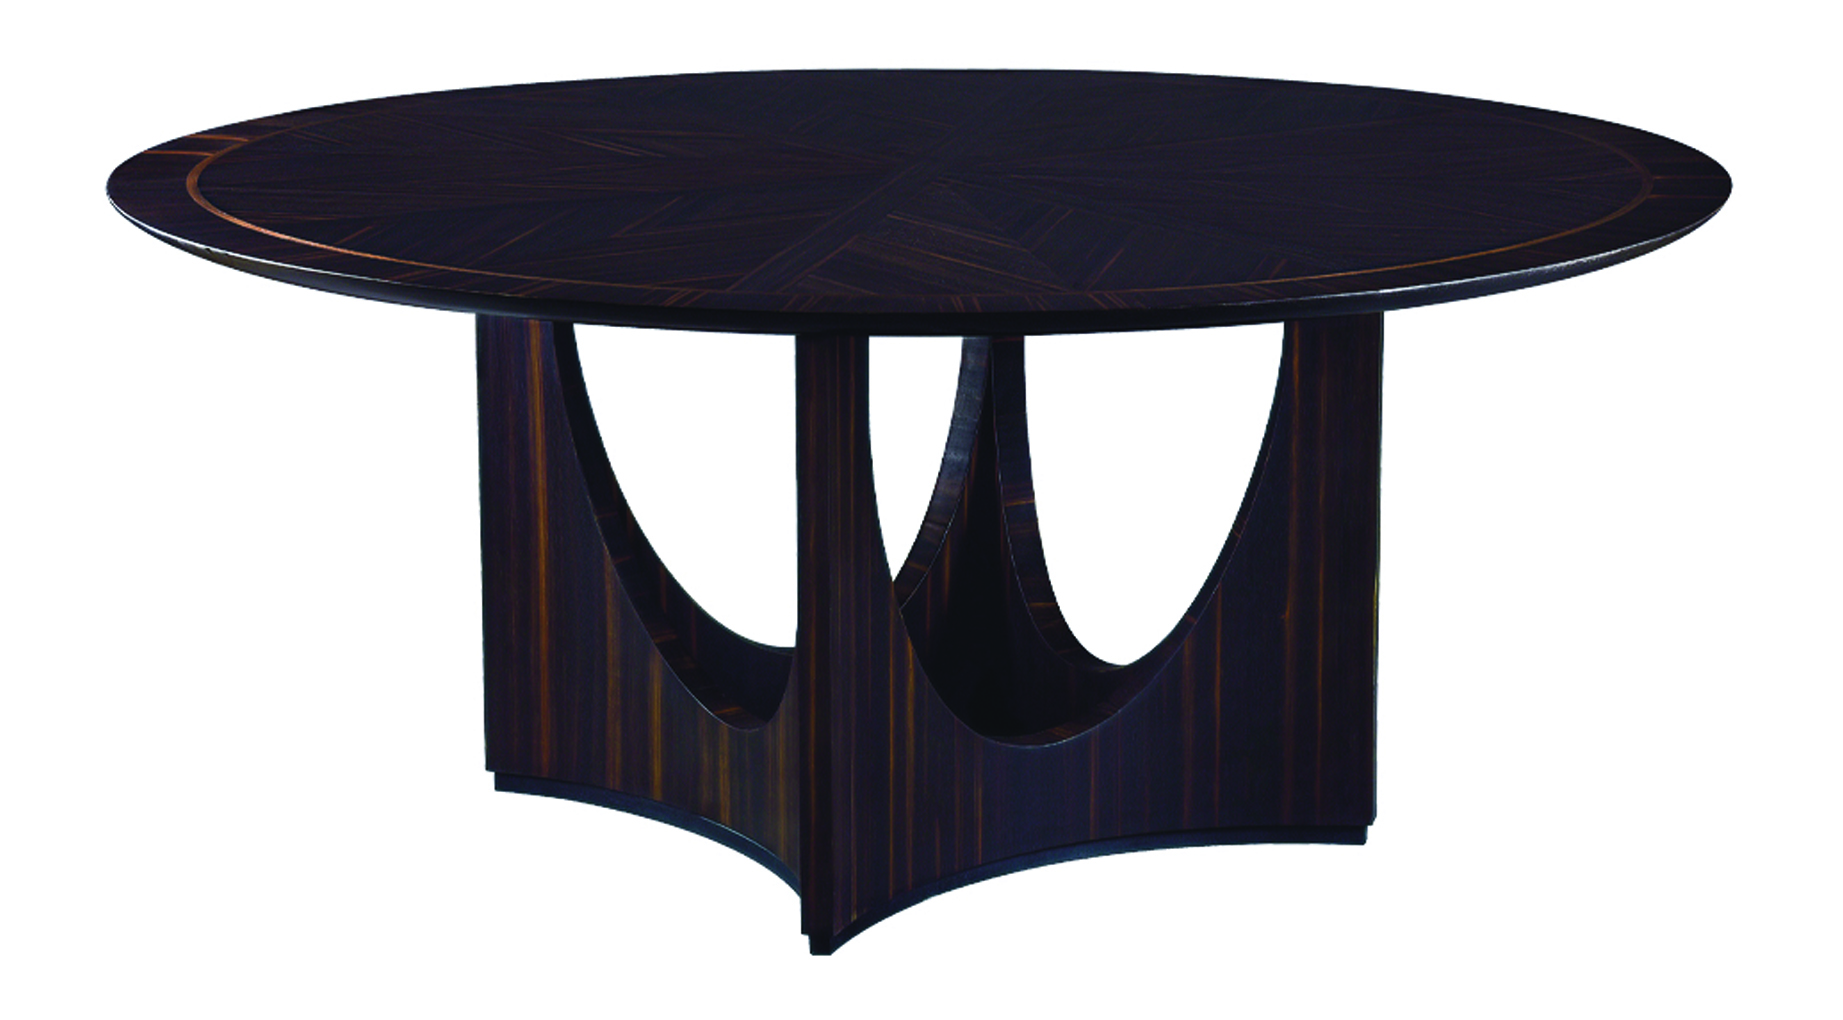 BELLEUVE 180 DINING TABLE